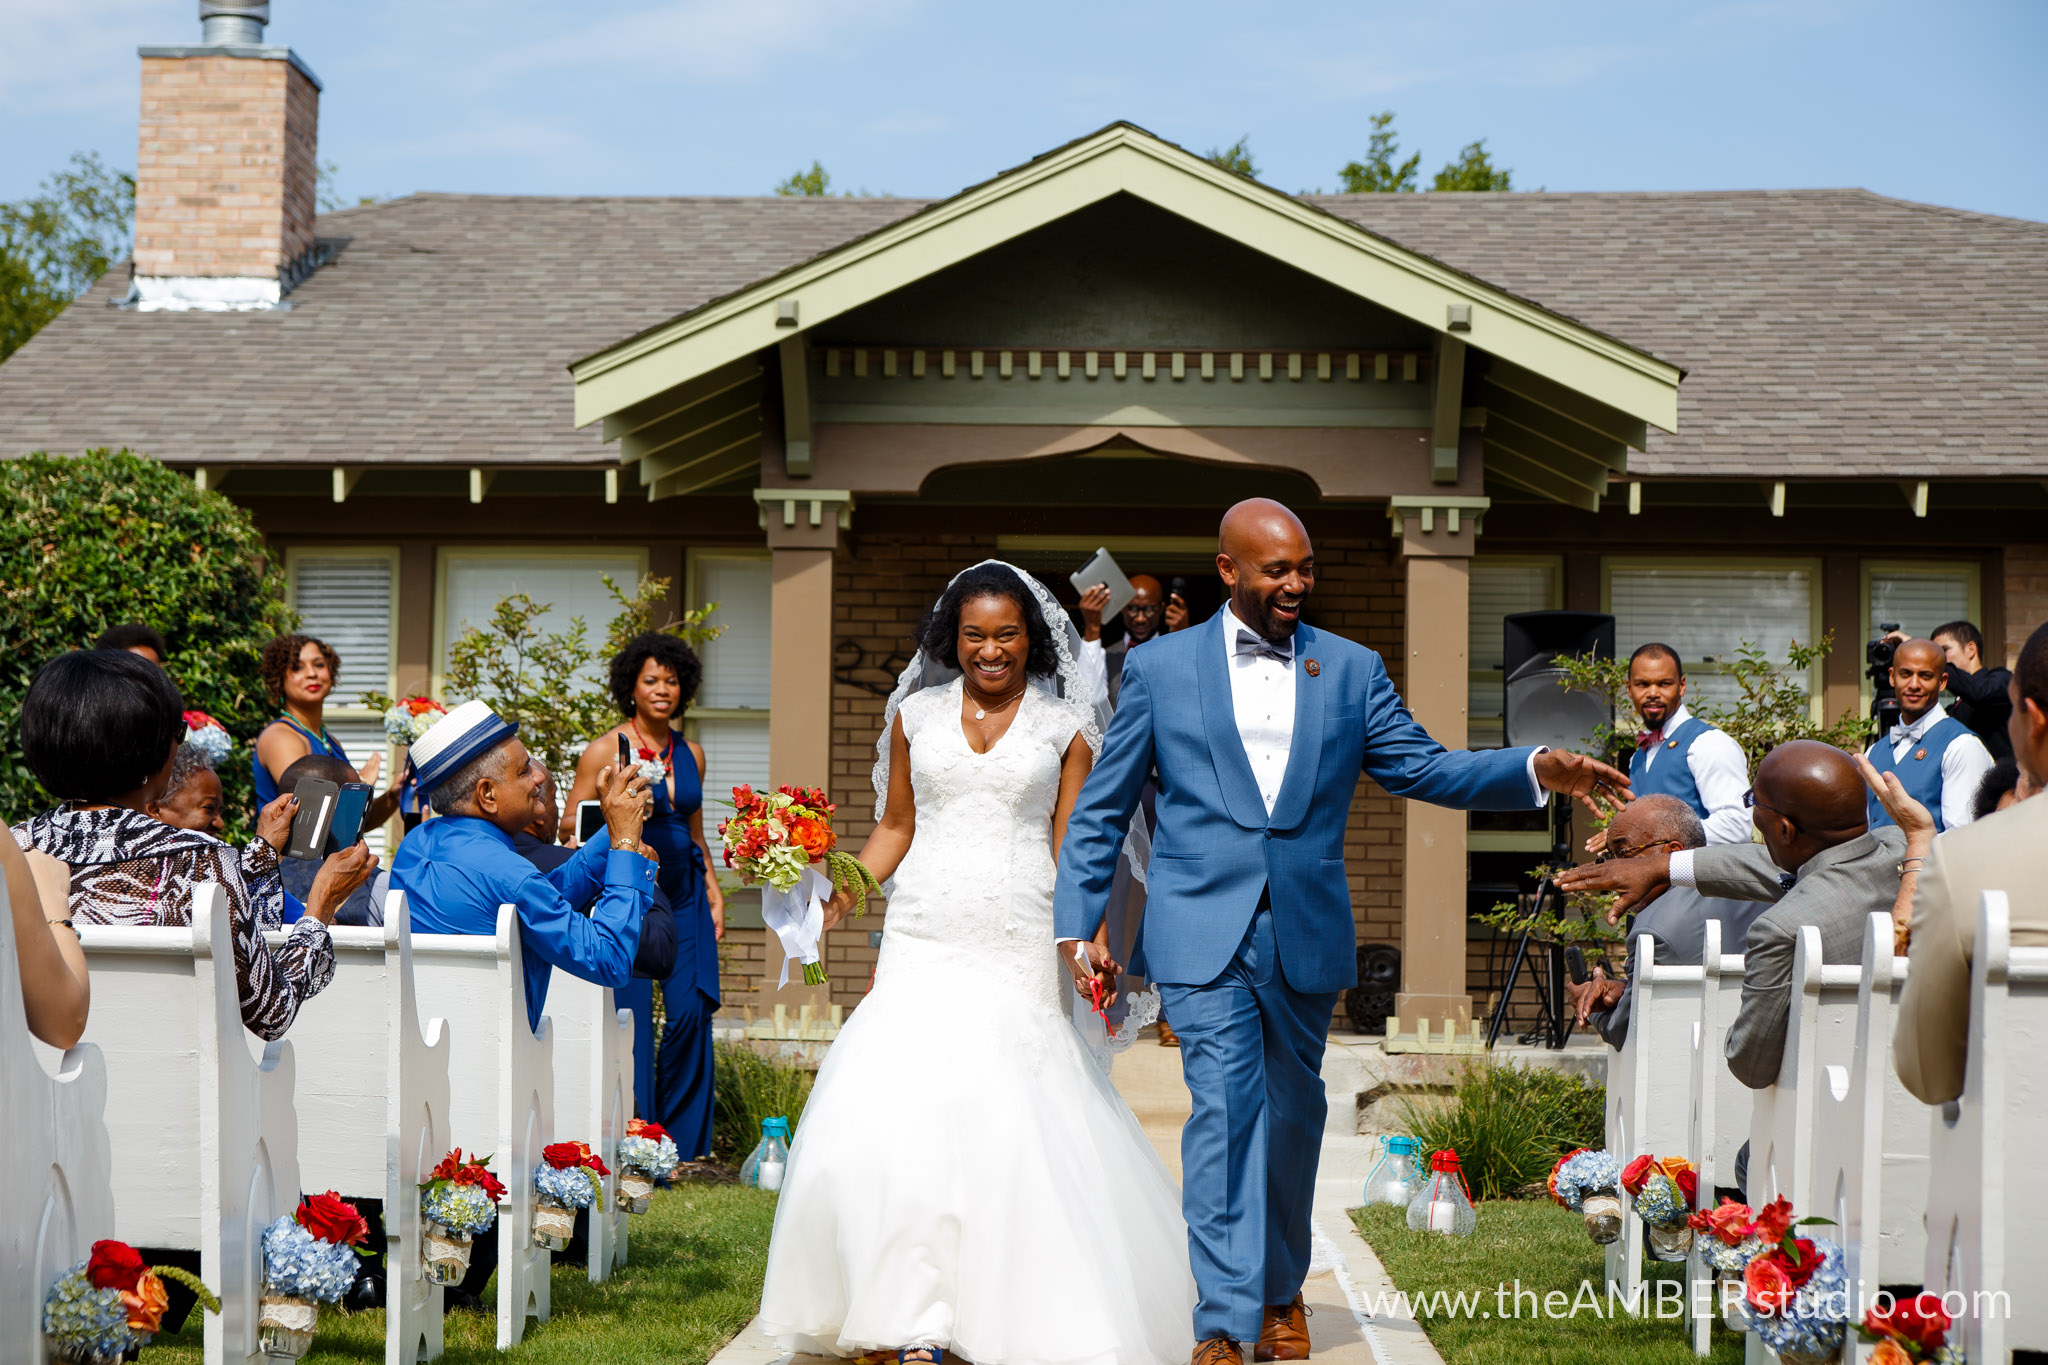 How To Organise A Small Wedding Without Offending Family